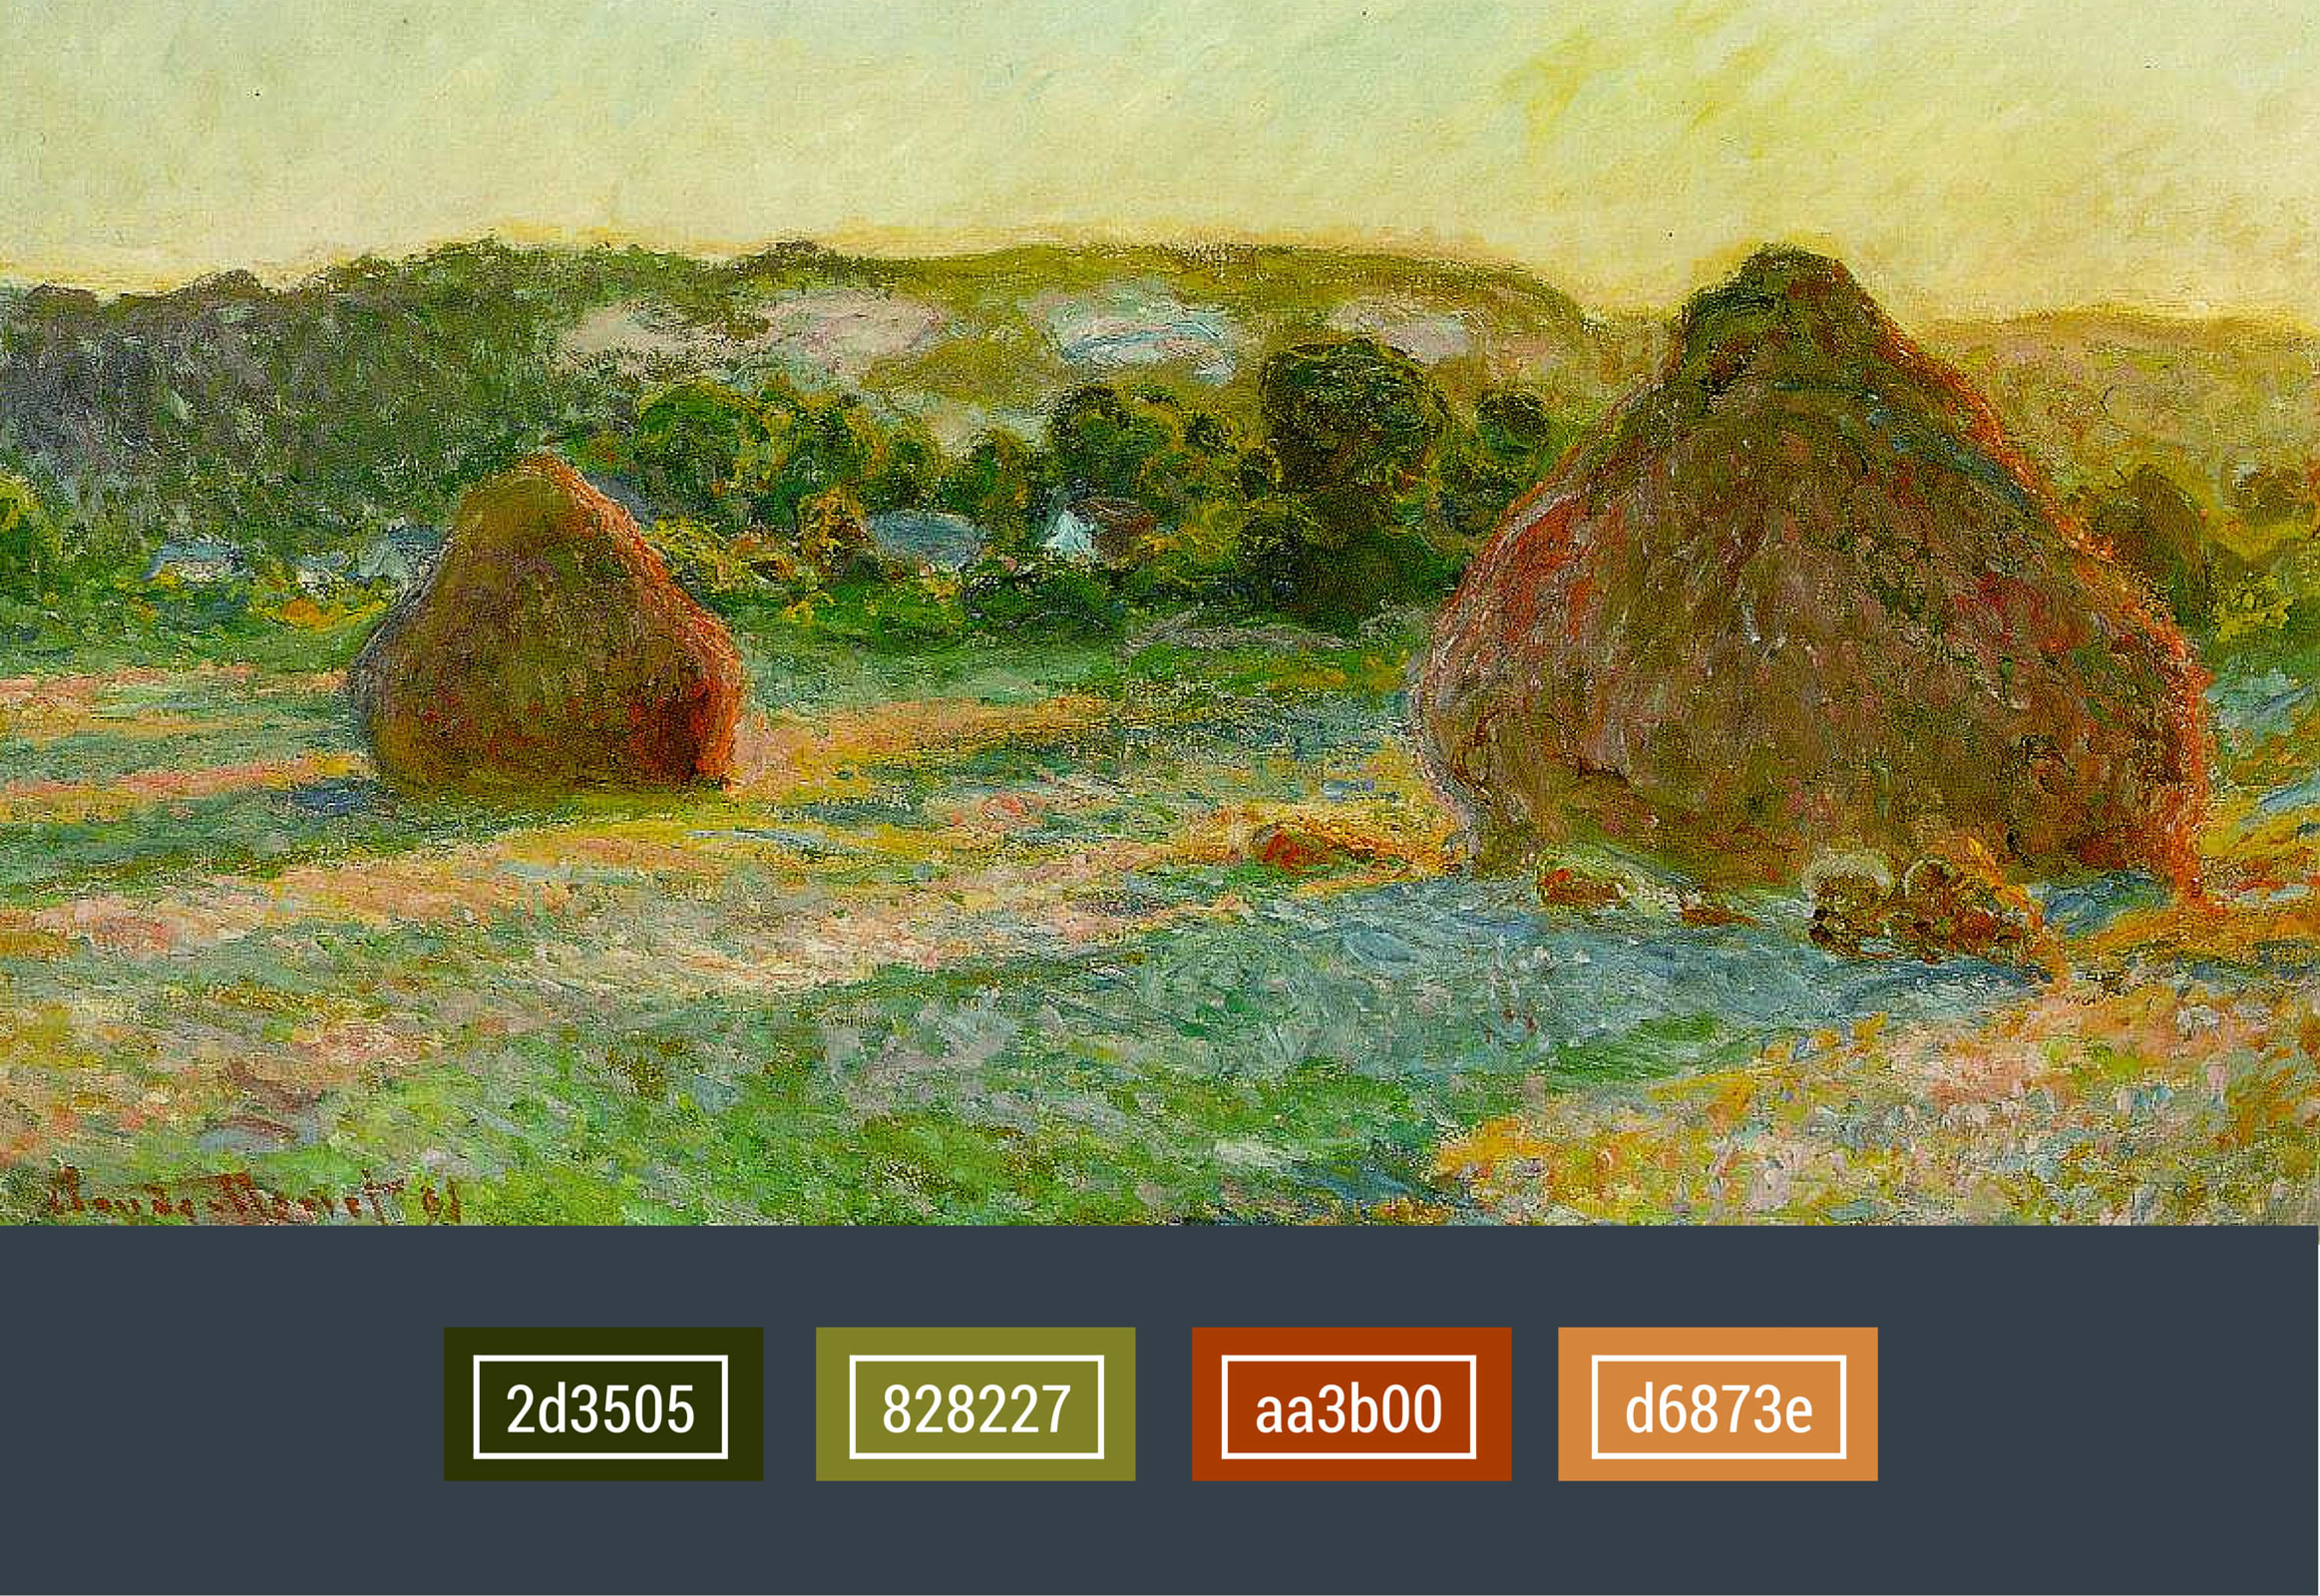 popular colors used in the Impressionism movement